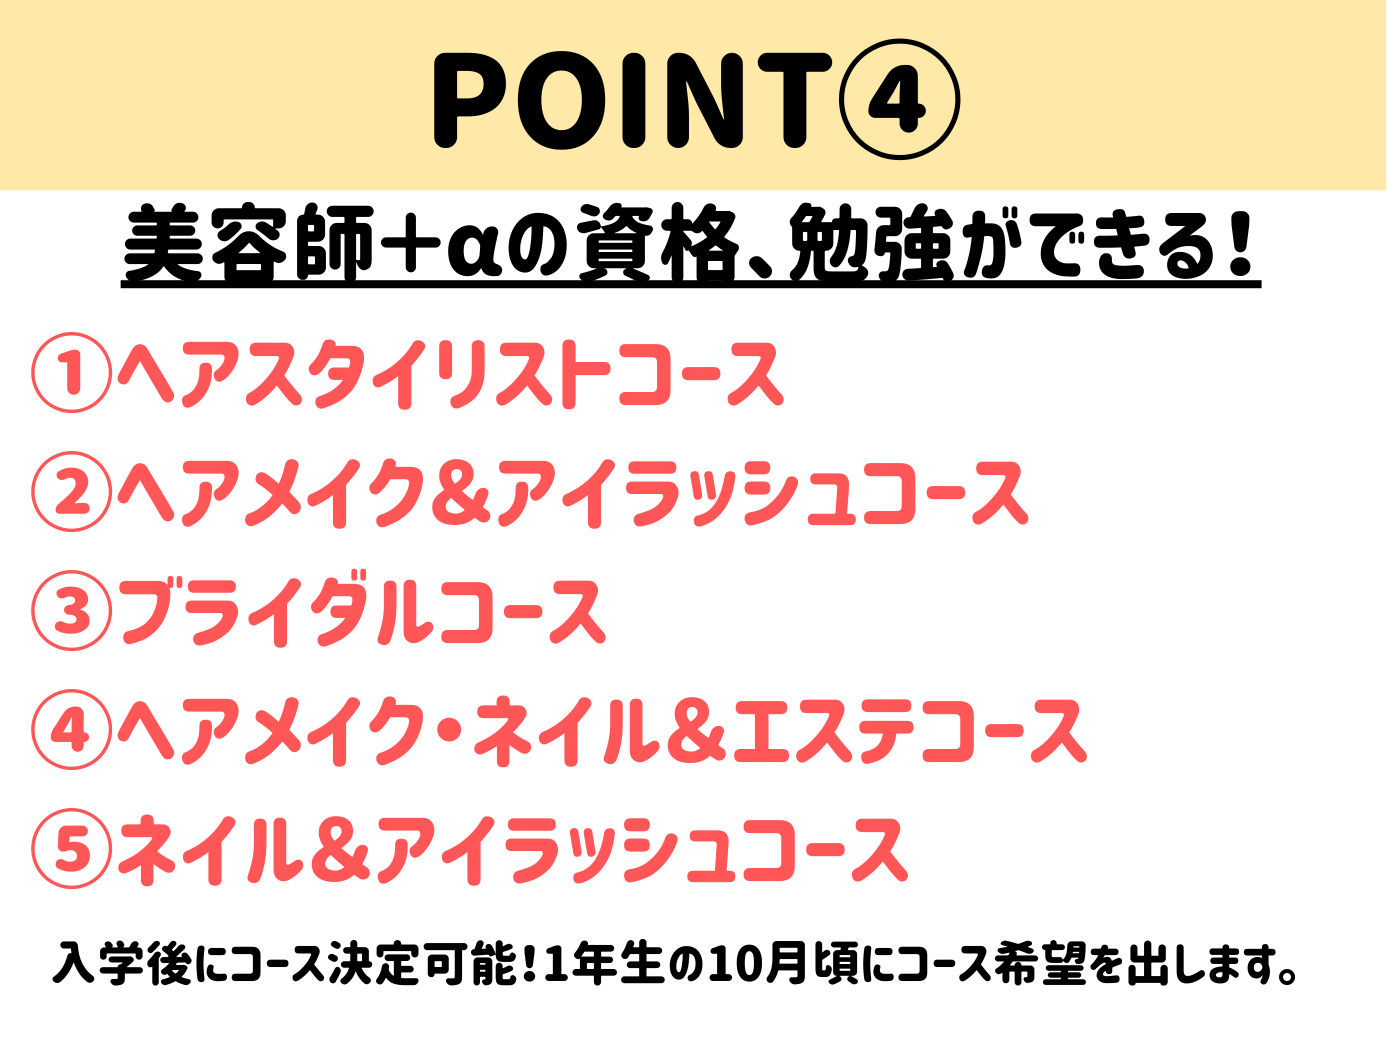 point4.png